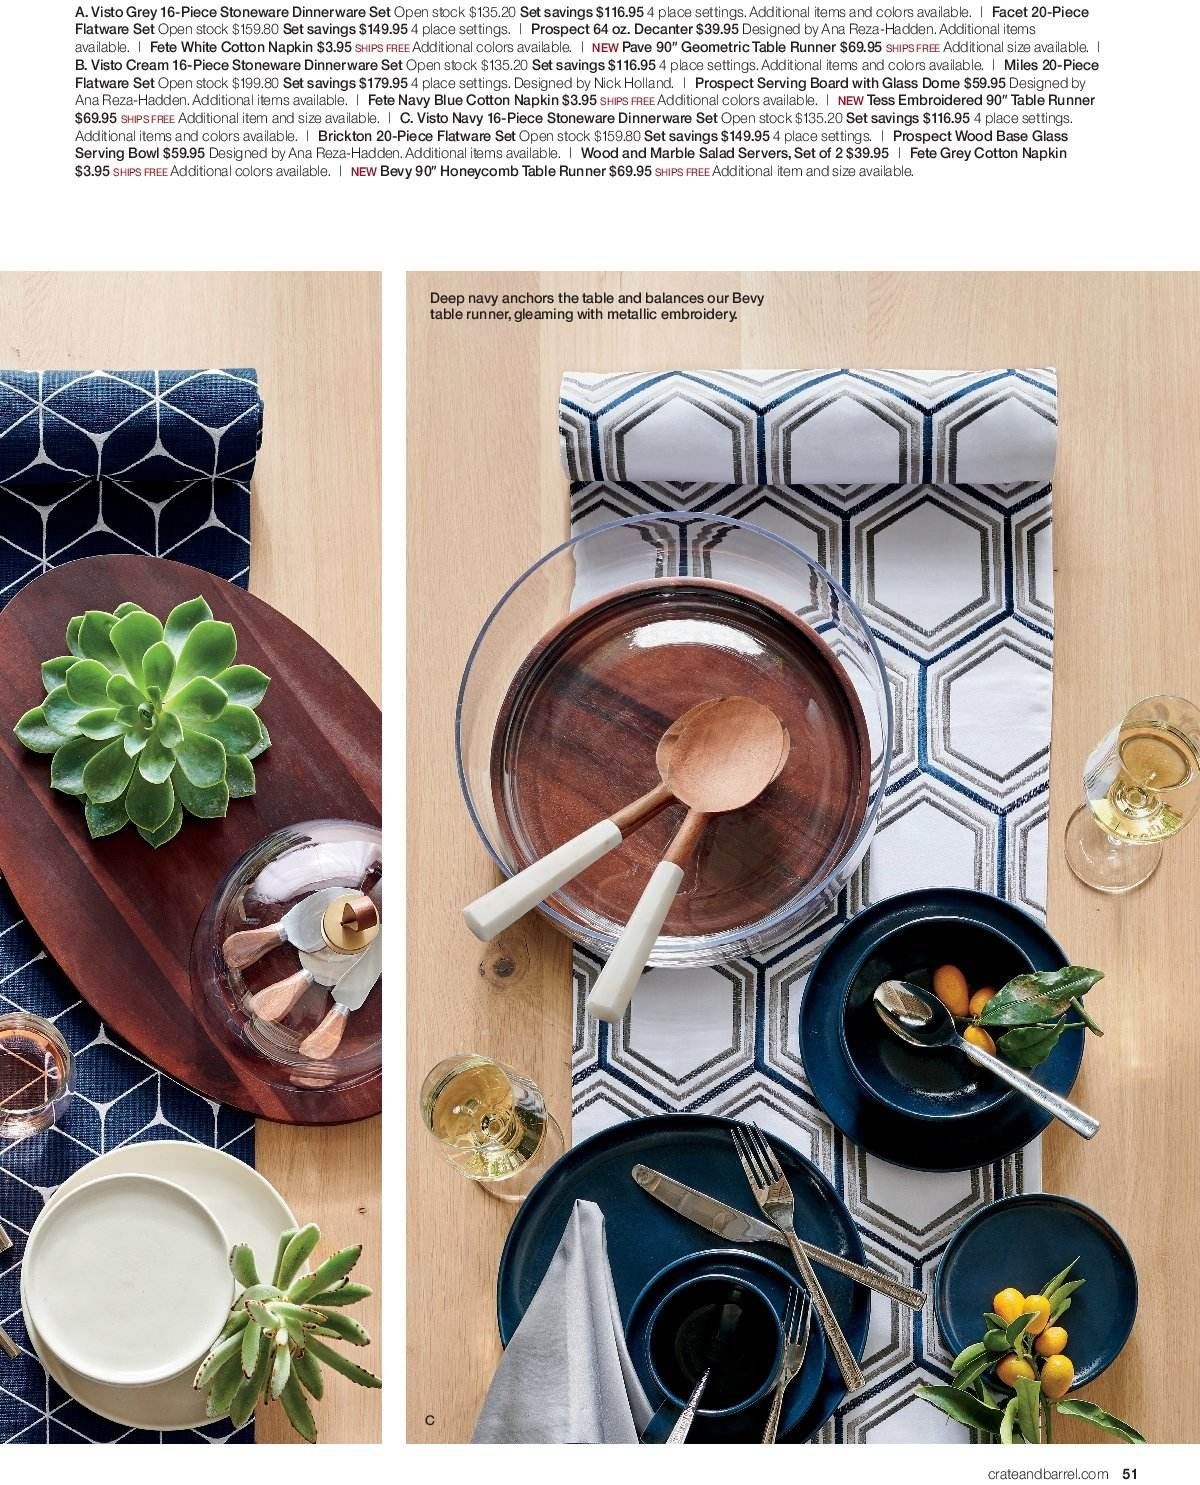 Crate & Barrel Flyer - 03.01.2019 - 03.31.2019 - Sales products - bowl, cotton, dinnerware set, flatware, flatware set, napkin, table, table runner, salad, board, dinnerware. Page 51.